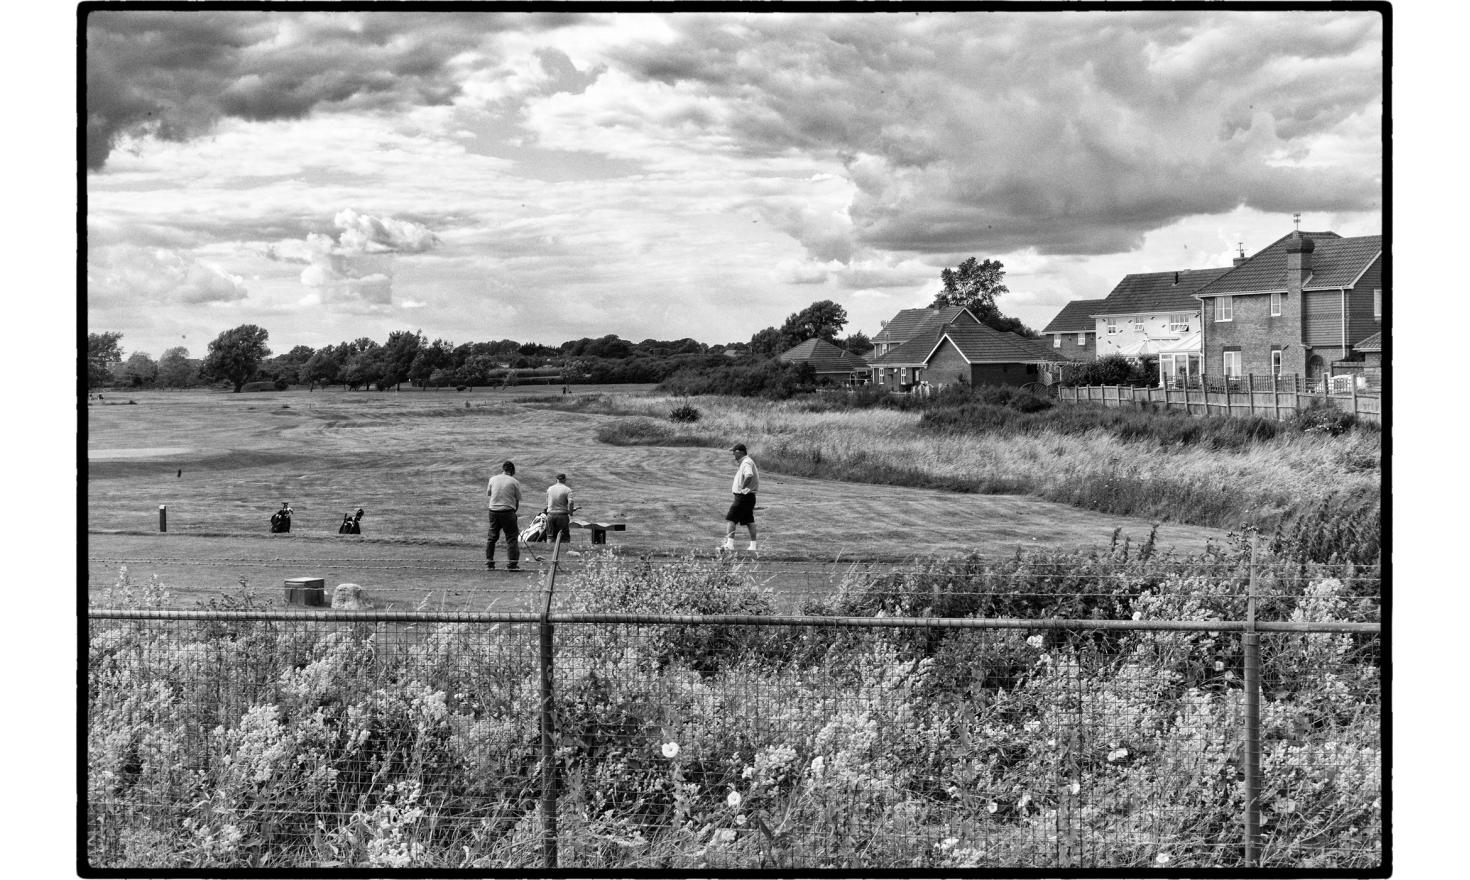 A golf course stands between Clacton and Jaywick. Clacton on sea, England. July 2016